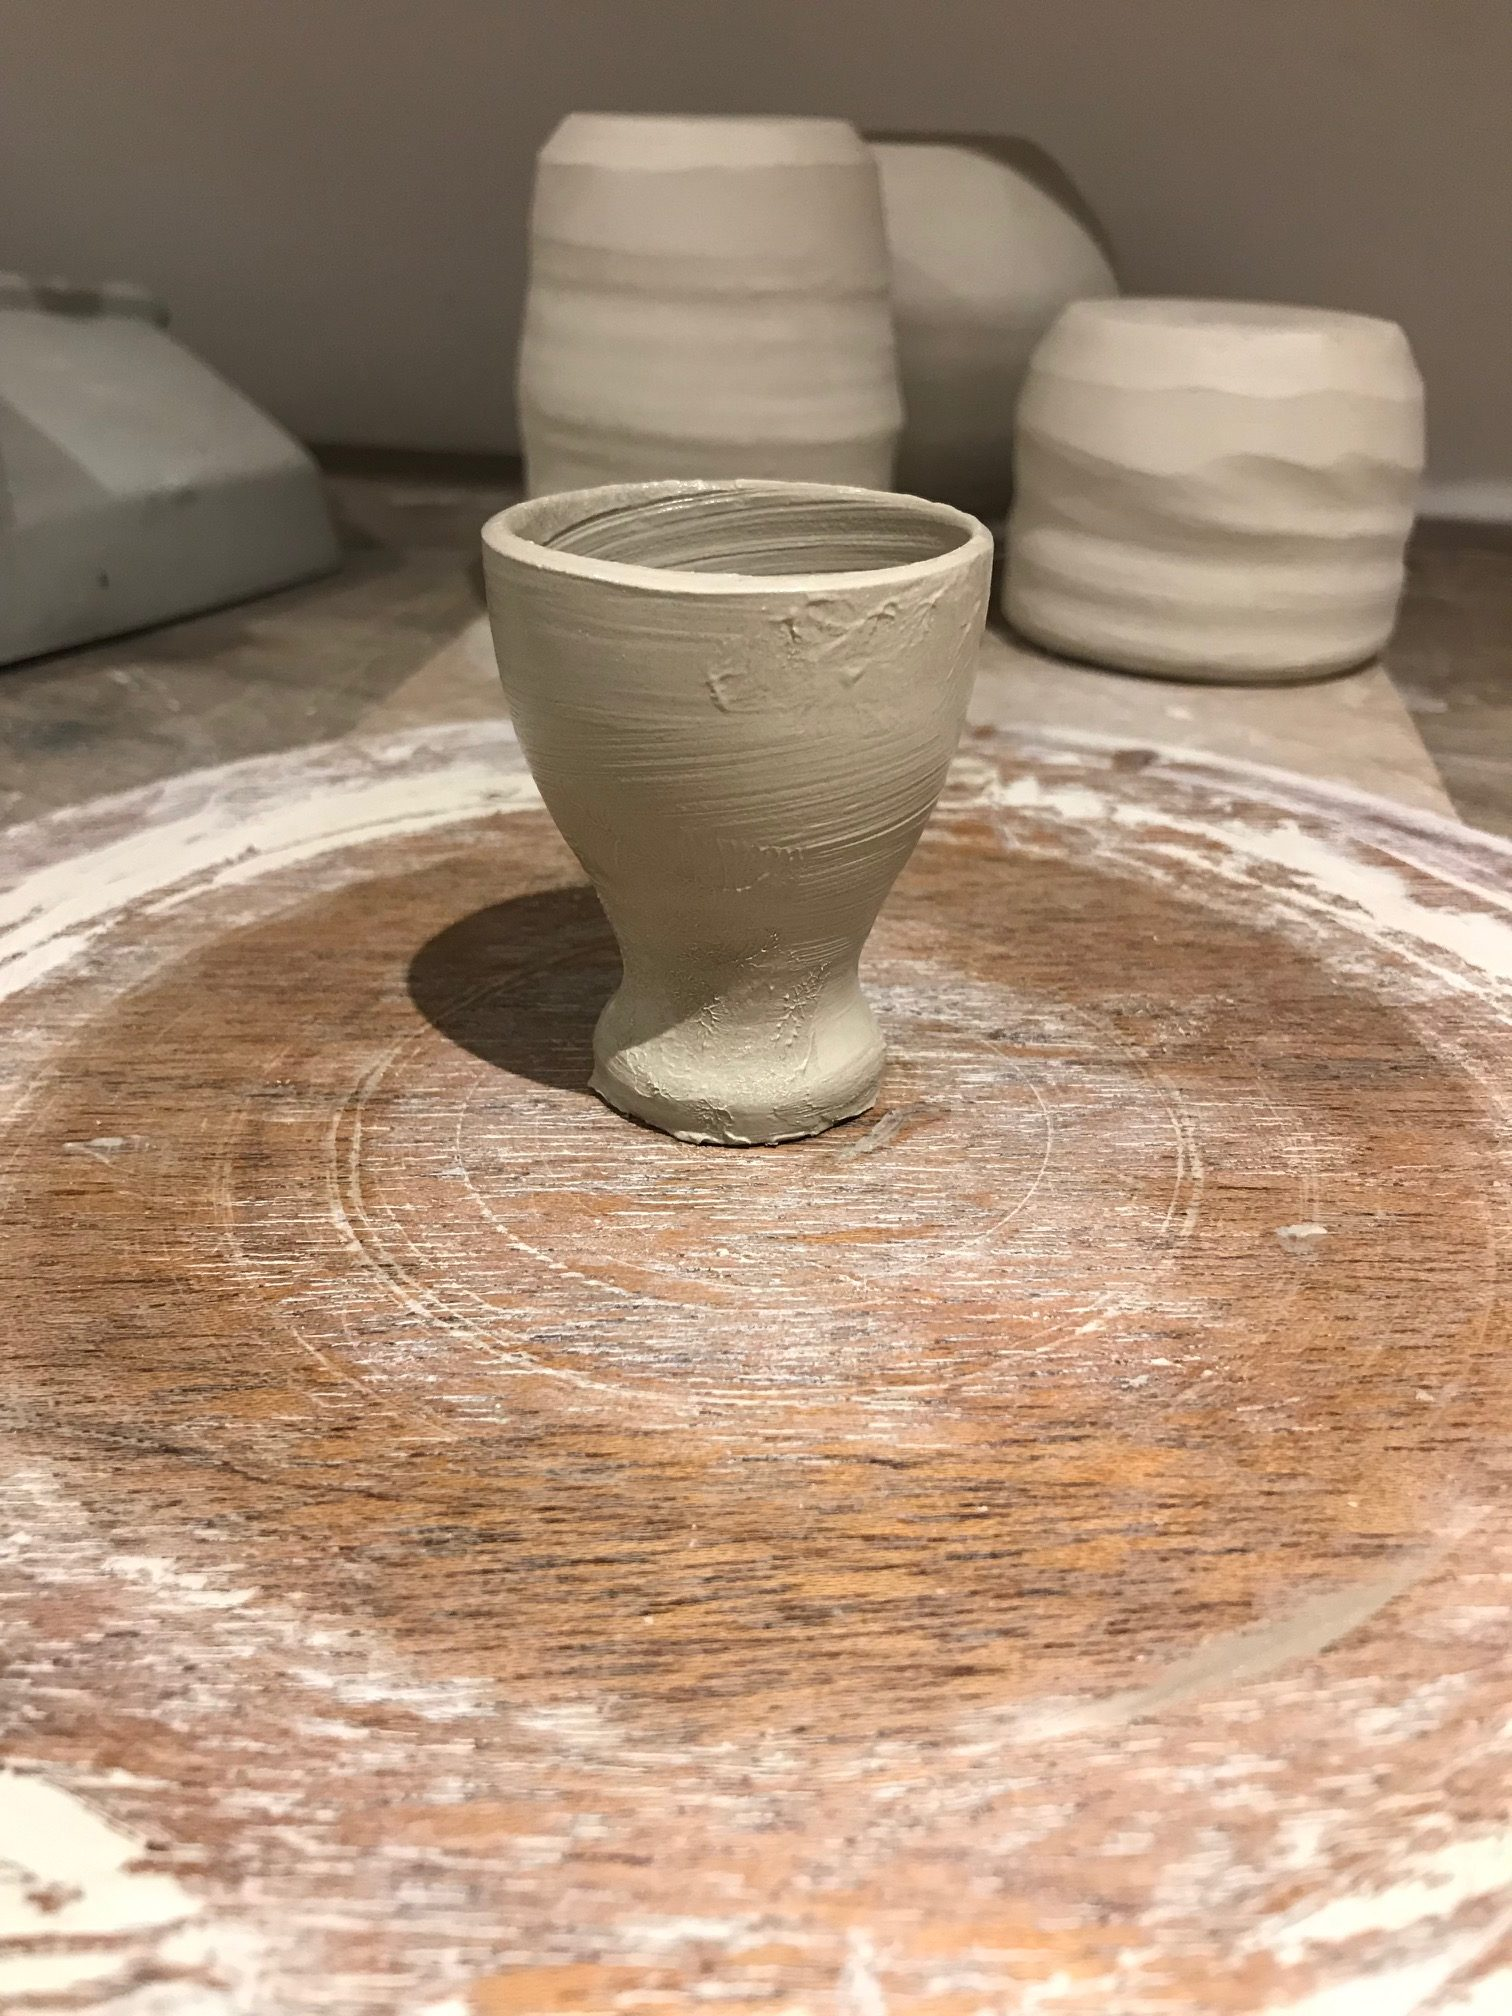 You are currently viewing Day 15: 100 Pots in 100 Days